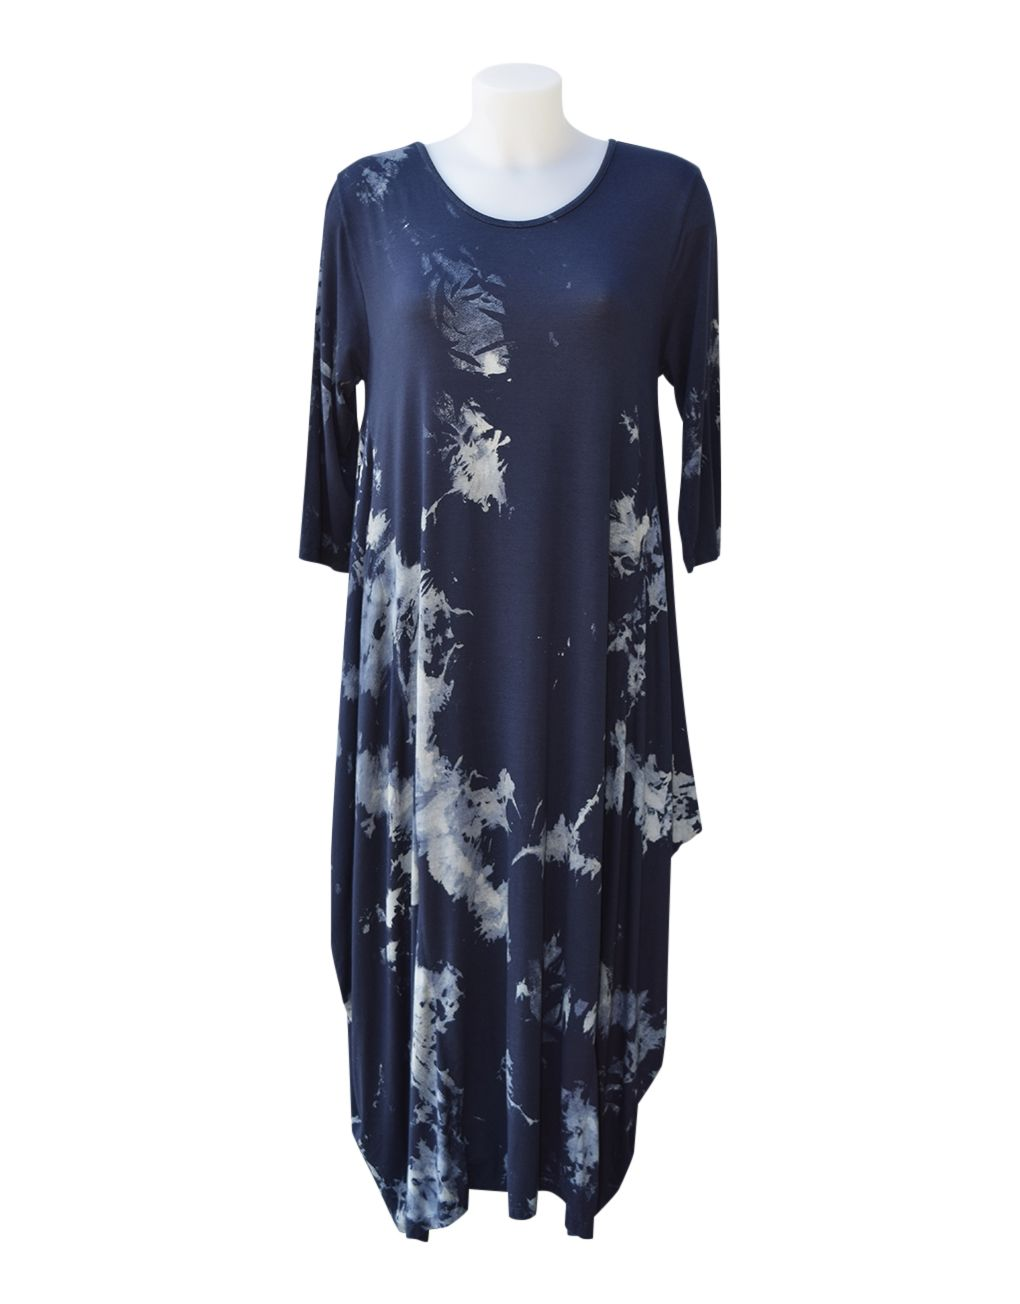 Fashion Fix Italian 3:4 Sleeve Magic Tie Dye Dress Navy